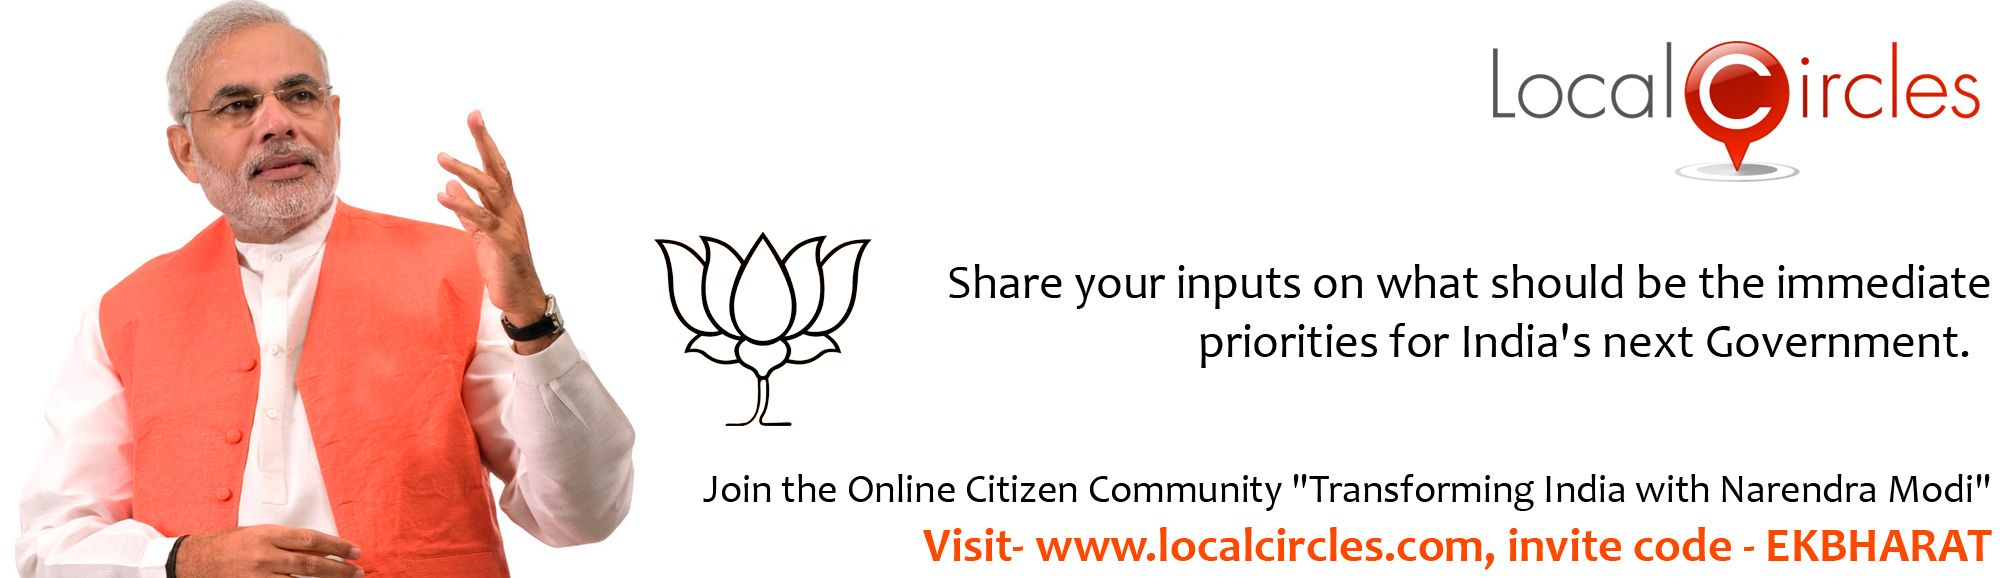 Transform_India_with_Narendra_Modi_-_LocalCircles-EKBHARAT___20140514011632___.jpg